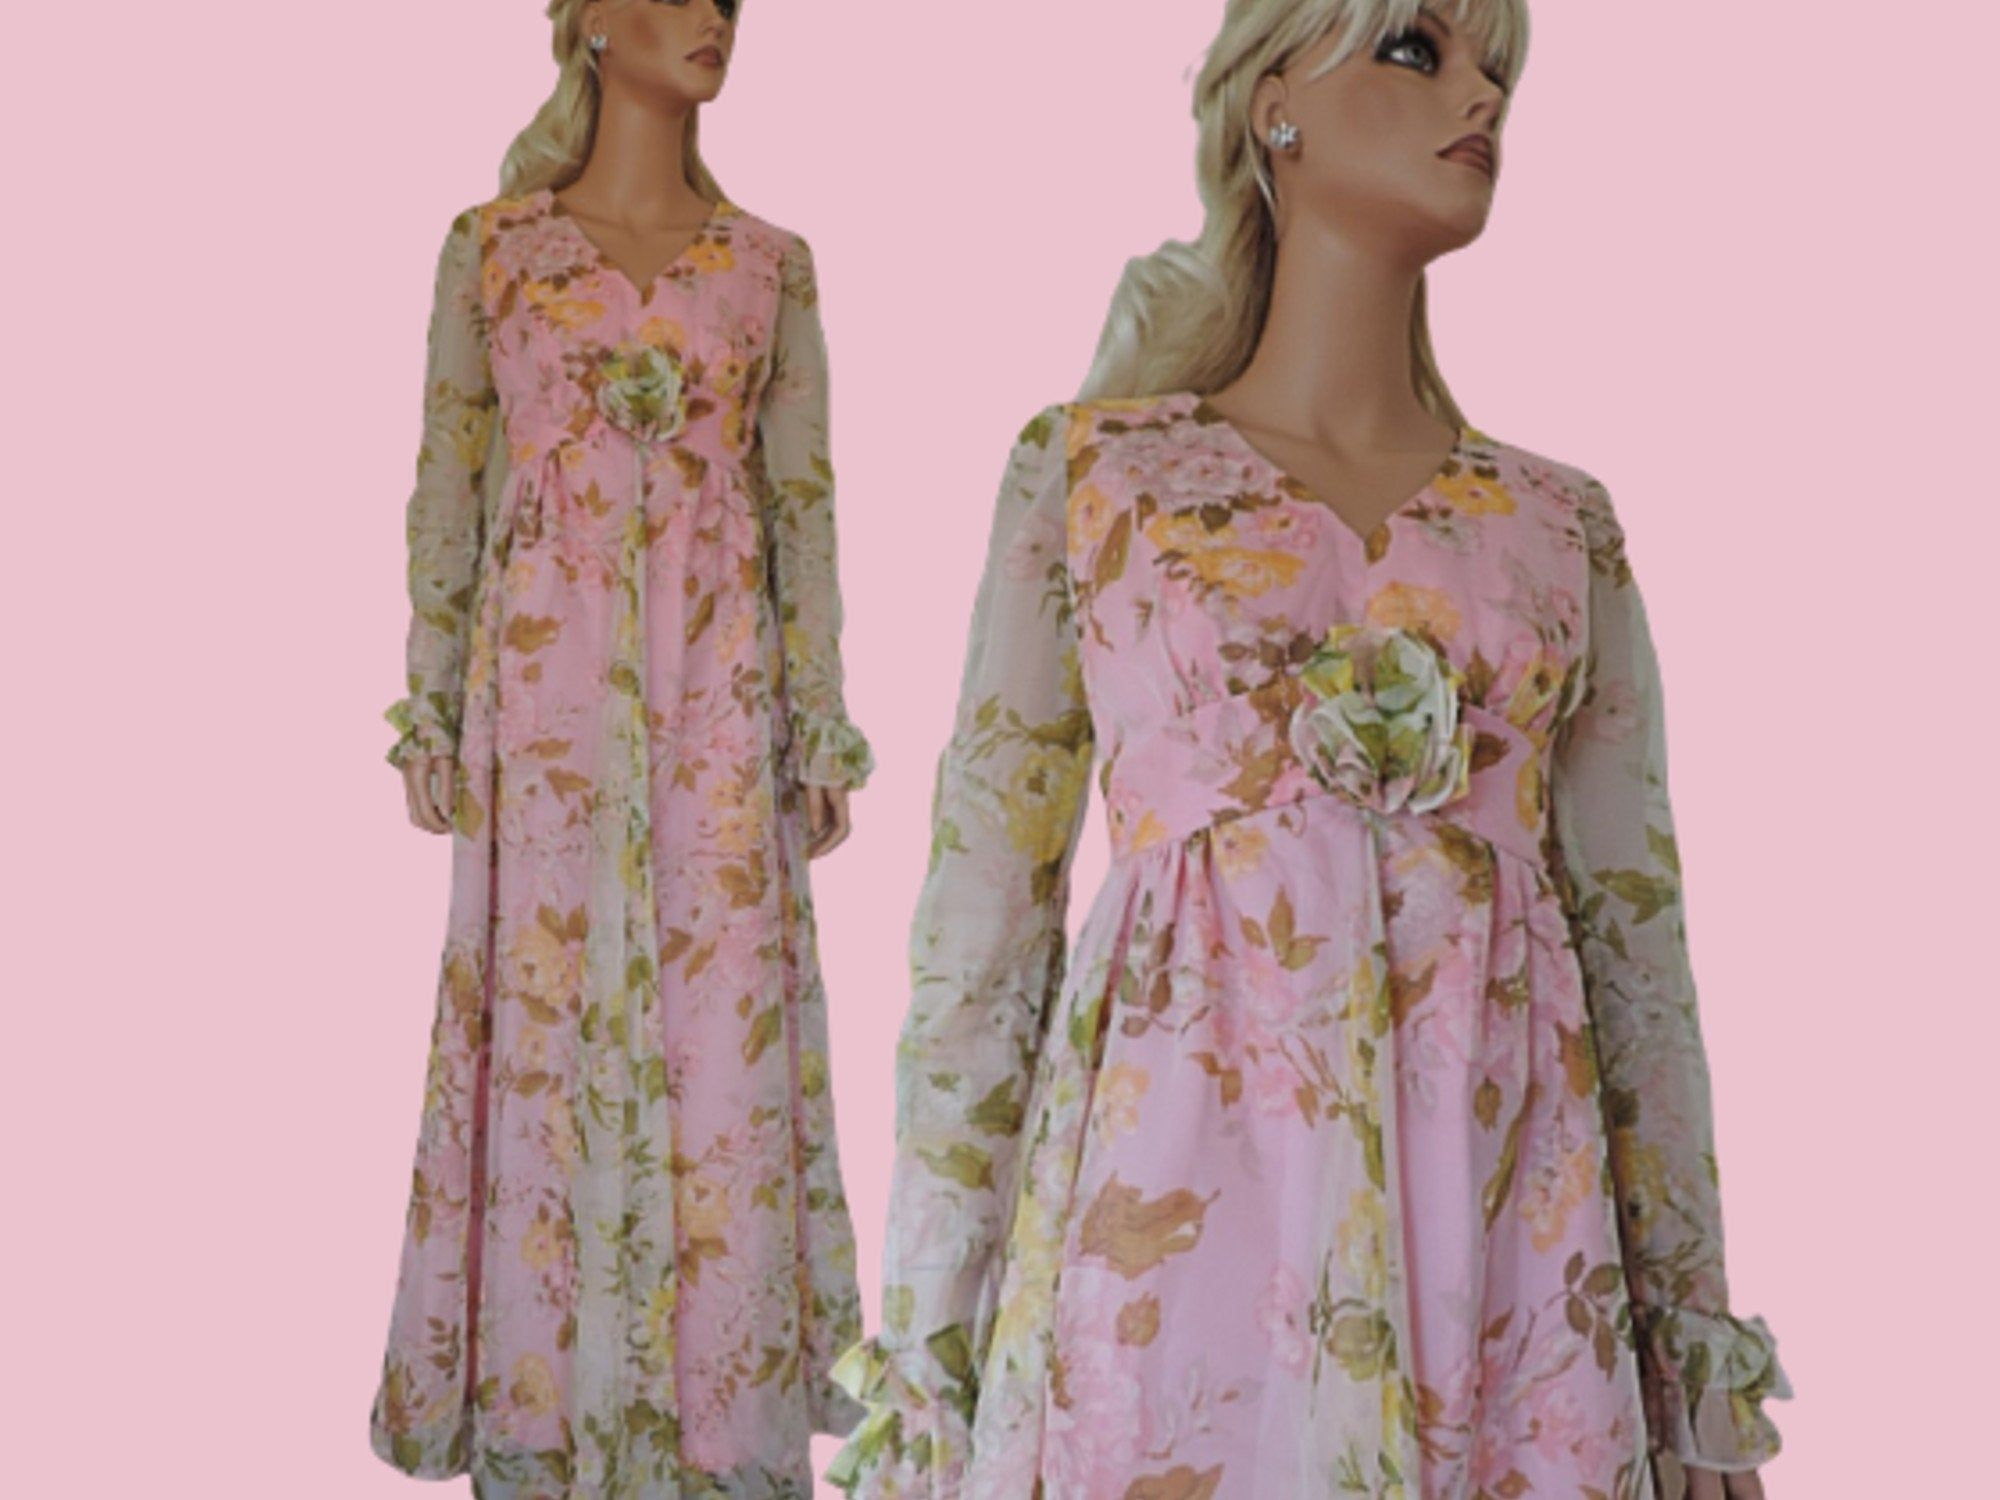 70s Maxi Dress In Pink Floral Chiffon Long Vintage Hippie Boho Gown With Sheer Sleeves By Melody Uk 10 Us 6 Vintage Maxi Dress Maxi Dress 70s Maxi Dress [ 1500 x 2000 Pixel ]